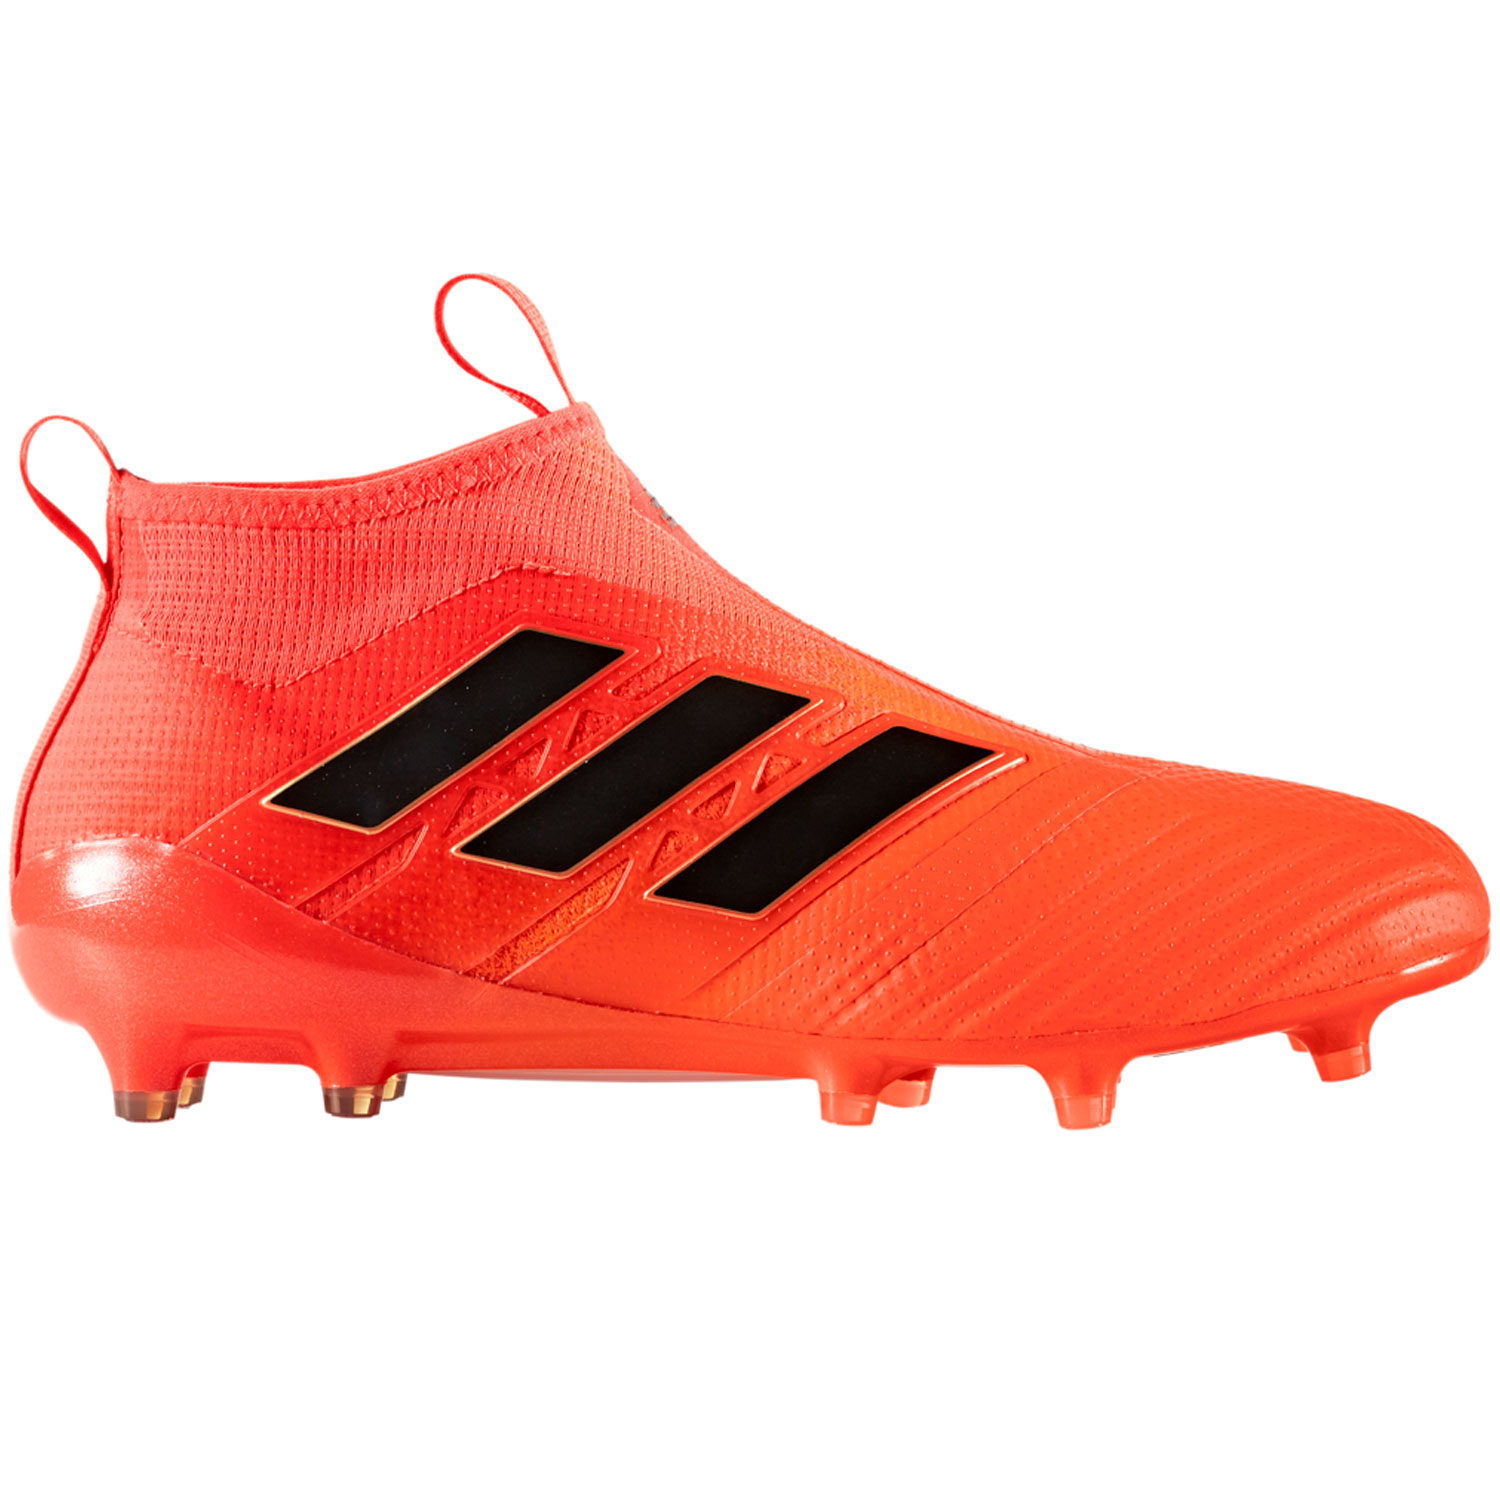 The adidas ACE 17+ PURECONTROL FG has a Primeknit laceless upper that gives  you complete control with next to zero wear-in time. Designed for firm  ground ... 328539bc6a8